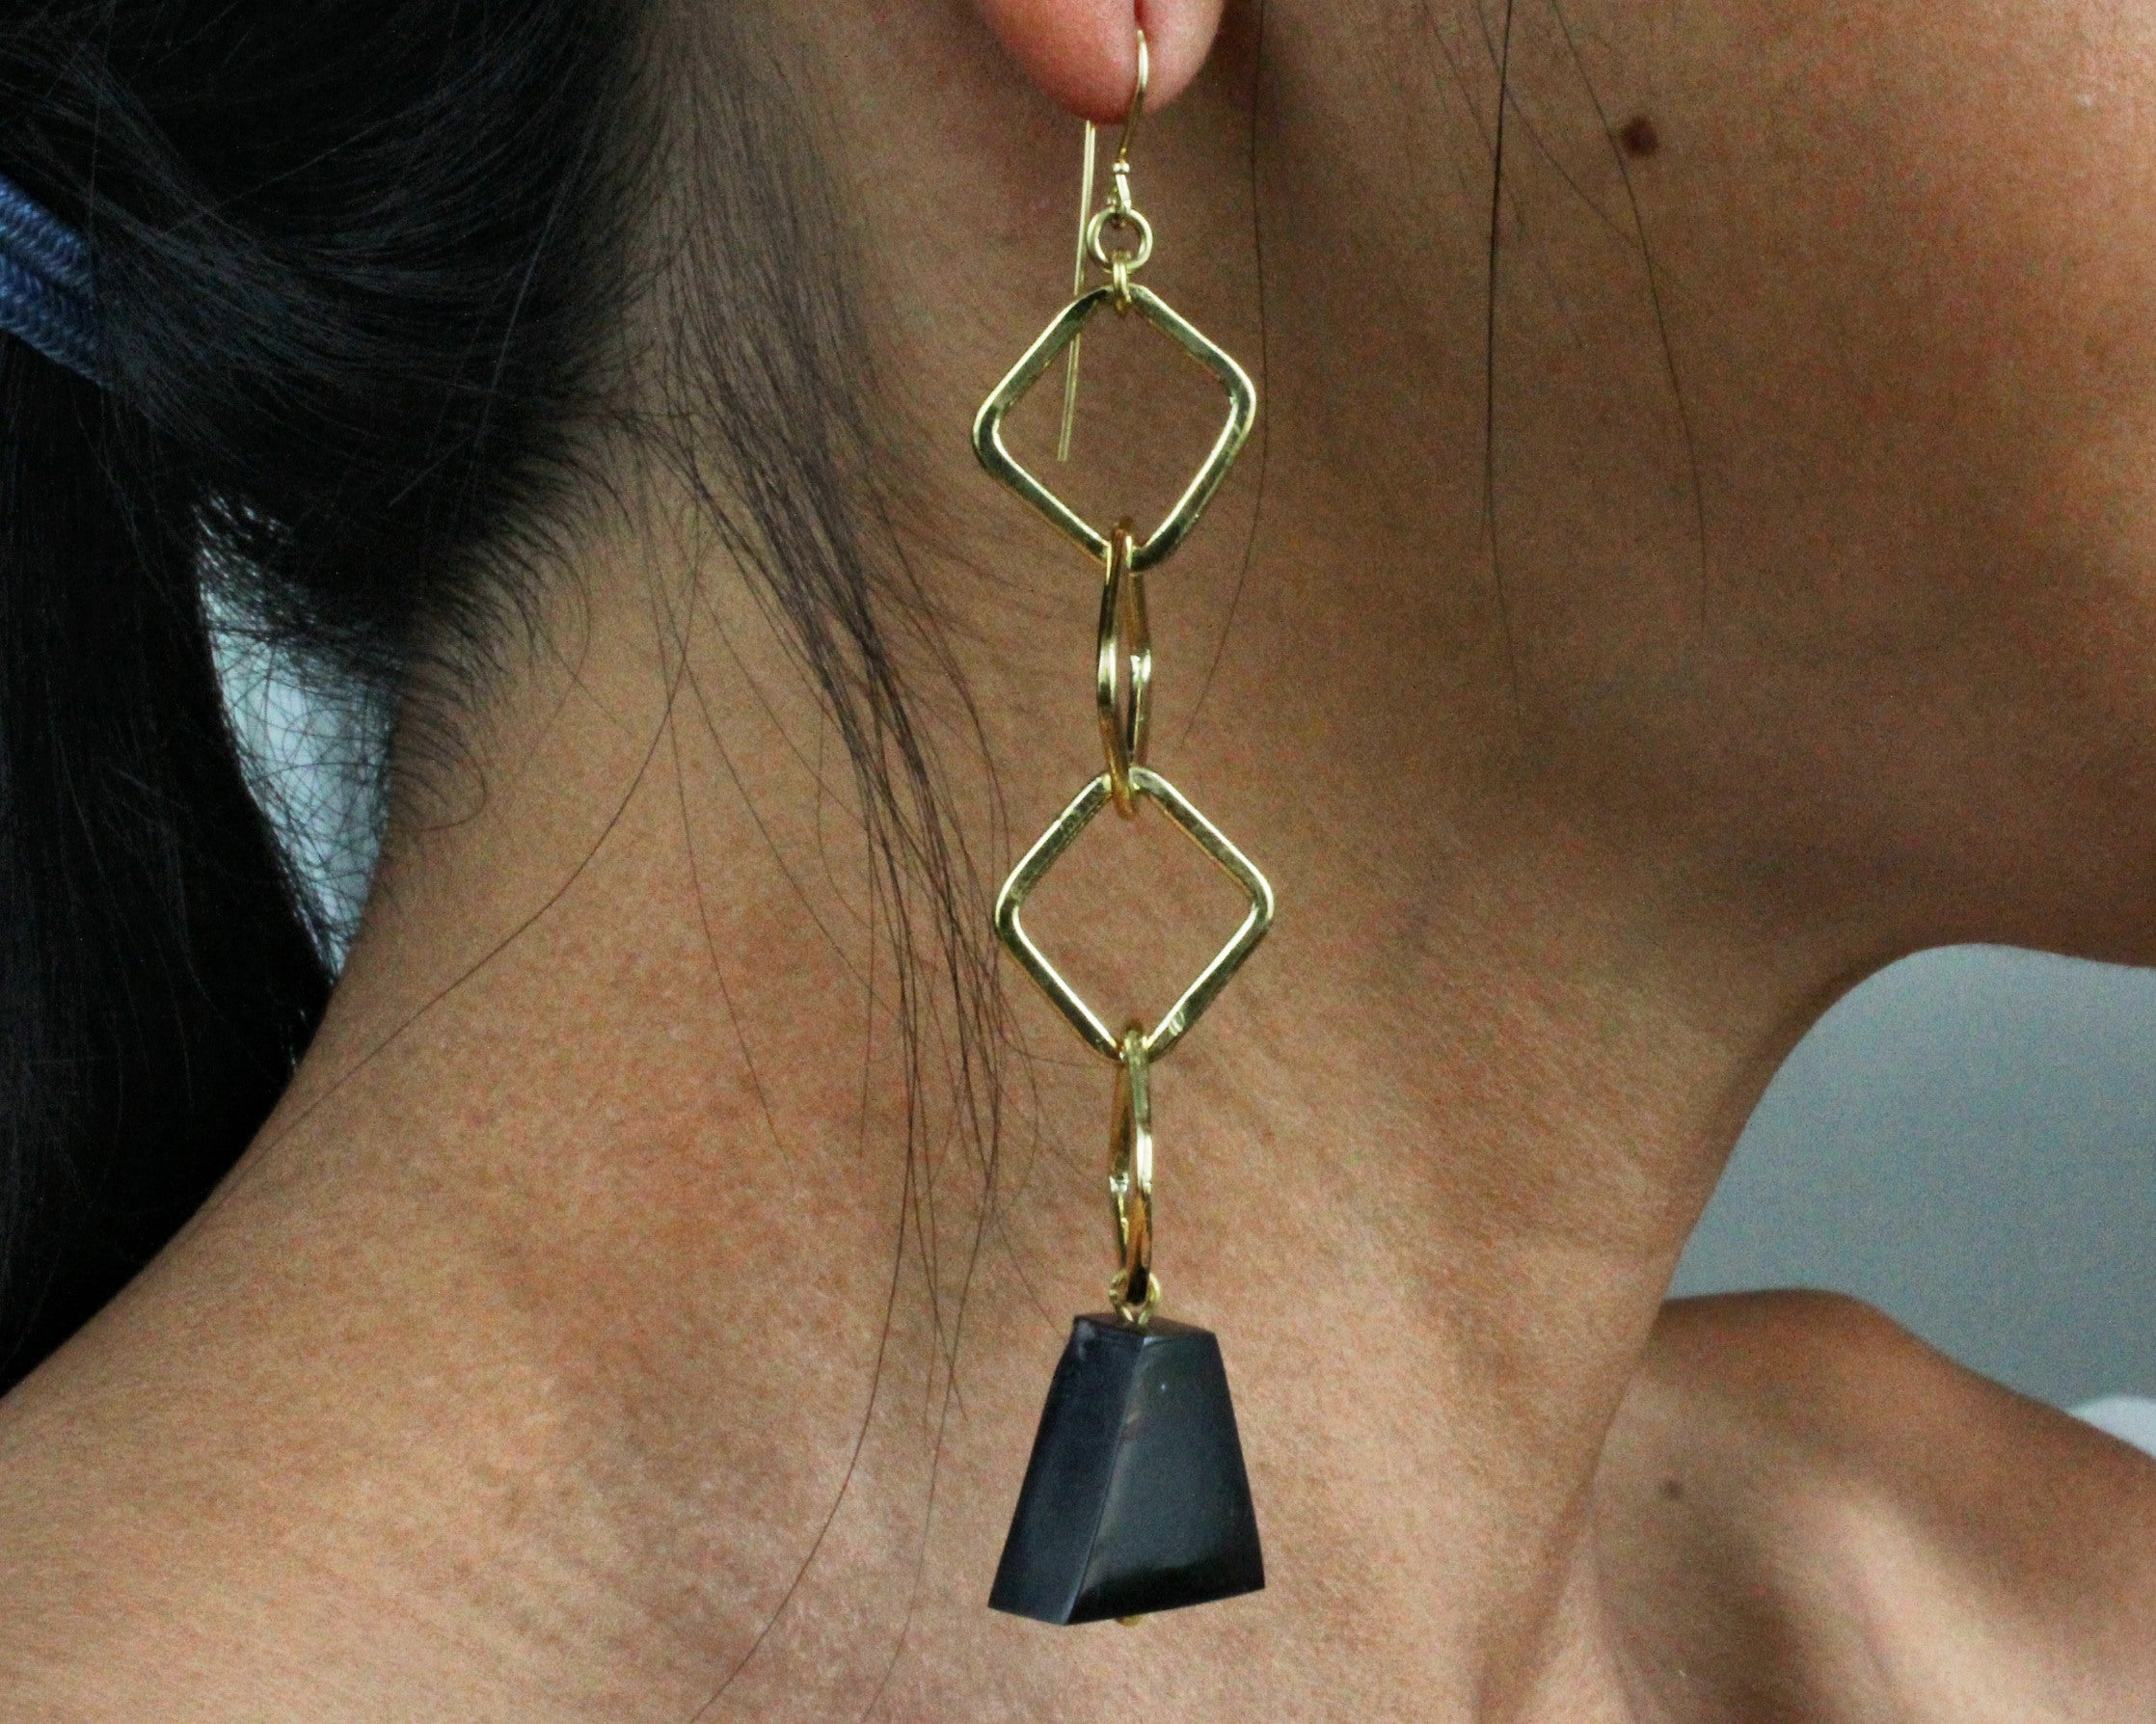 Handmade earrings, brass chain, black bell, cowhorn, recycled, upcycled, hanging from ear